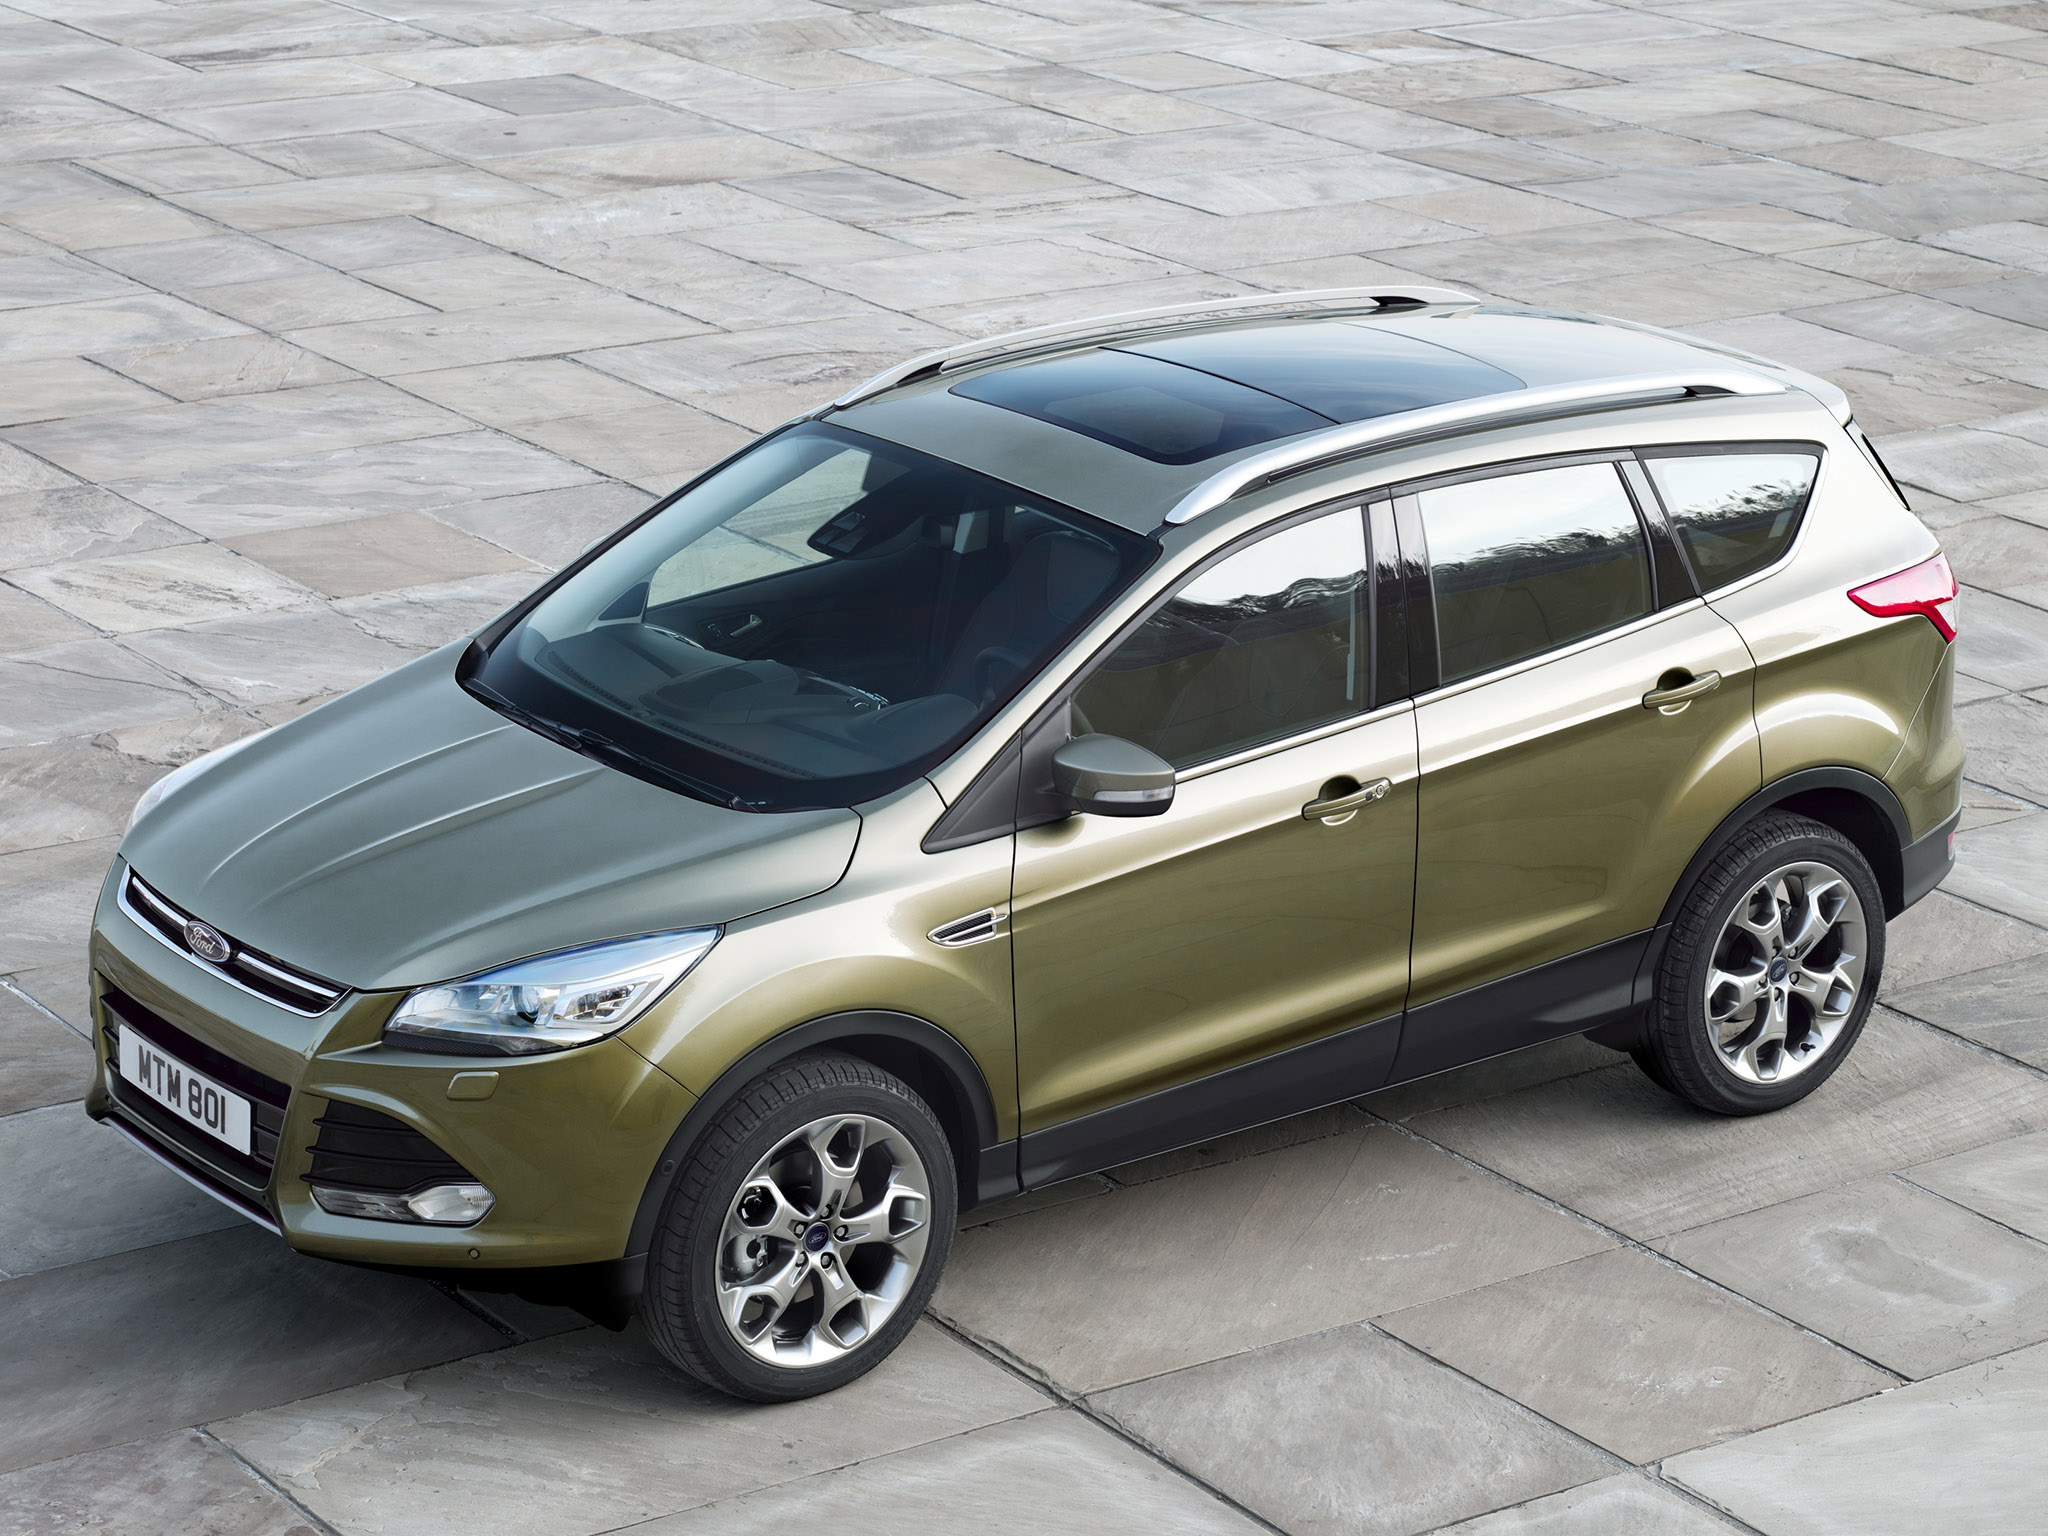 ford kuga 2012 ford kuga 2012 photo 17 car in pictures car photo gallery. Black Bedroom Furniture Sets. Home Design Ideas